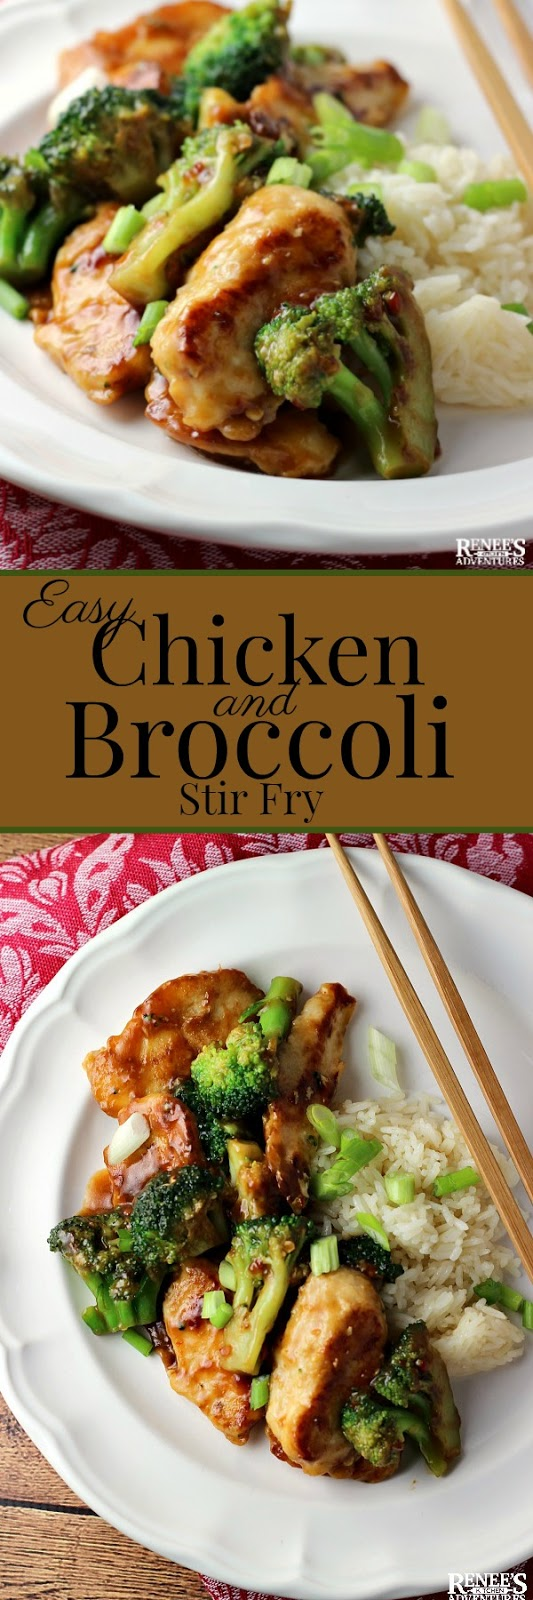 Easy Chicken and Broccoli Stir Fry by Renee's Kitchen Adventures - Easy stir fry recipe made with marinated chicken breast pieces, broccoli and a ginger garlic sauce. Easy dinner perfect for busy weeknights. A #WeightWatchers inspired recipe! #Asian #stirfry #ChineseNewYear